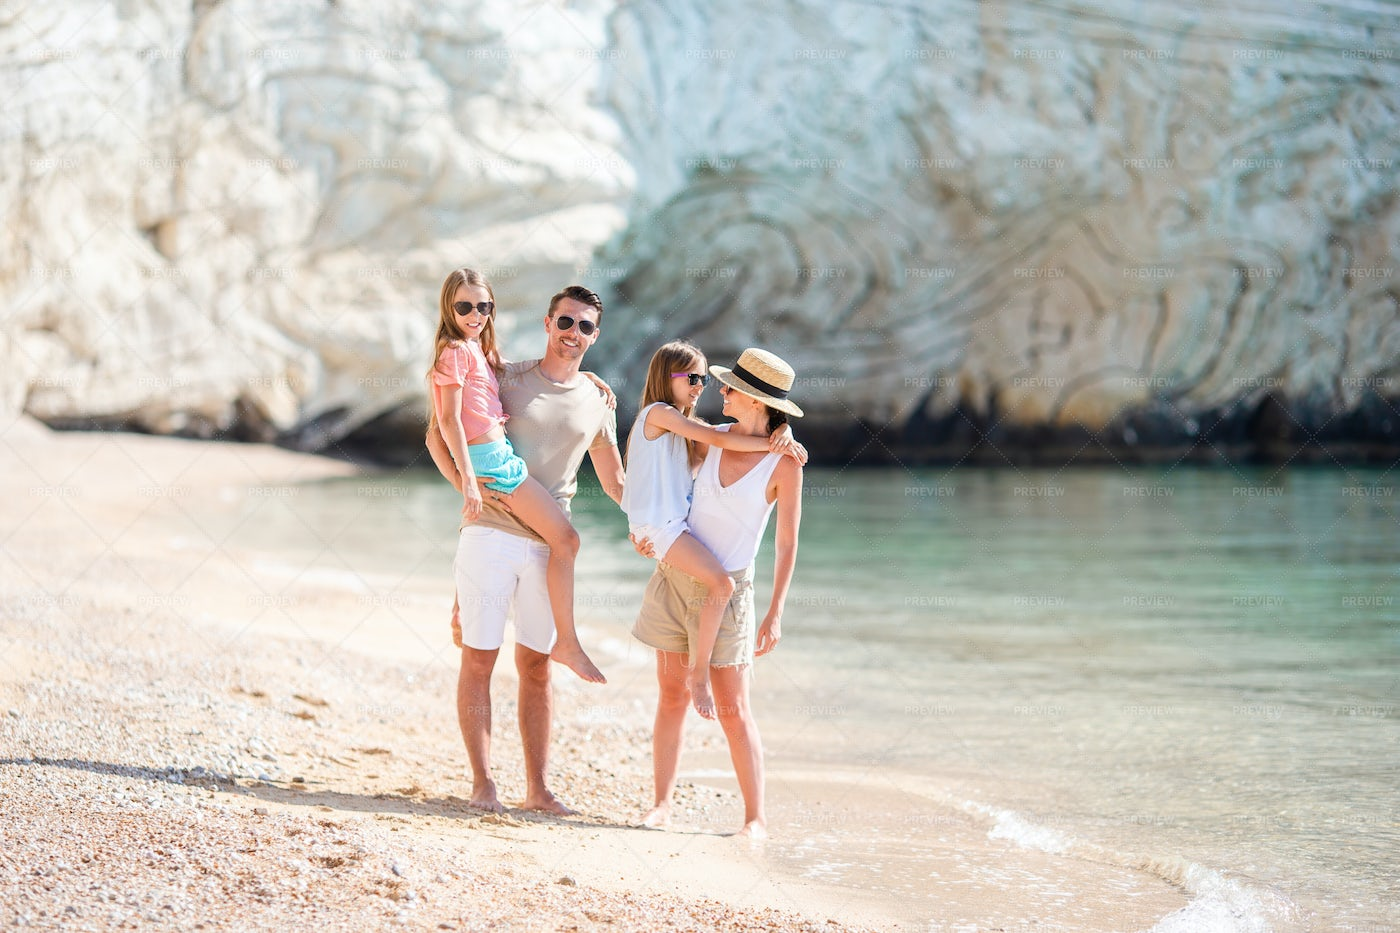 Family By The Cliffs: Stock Photos